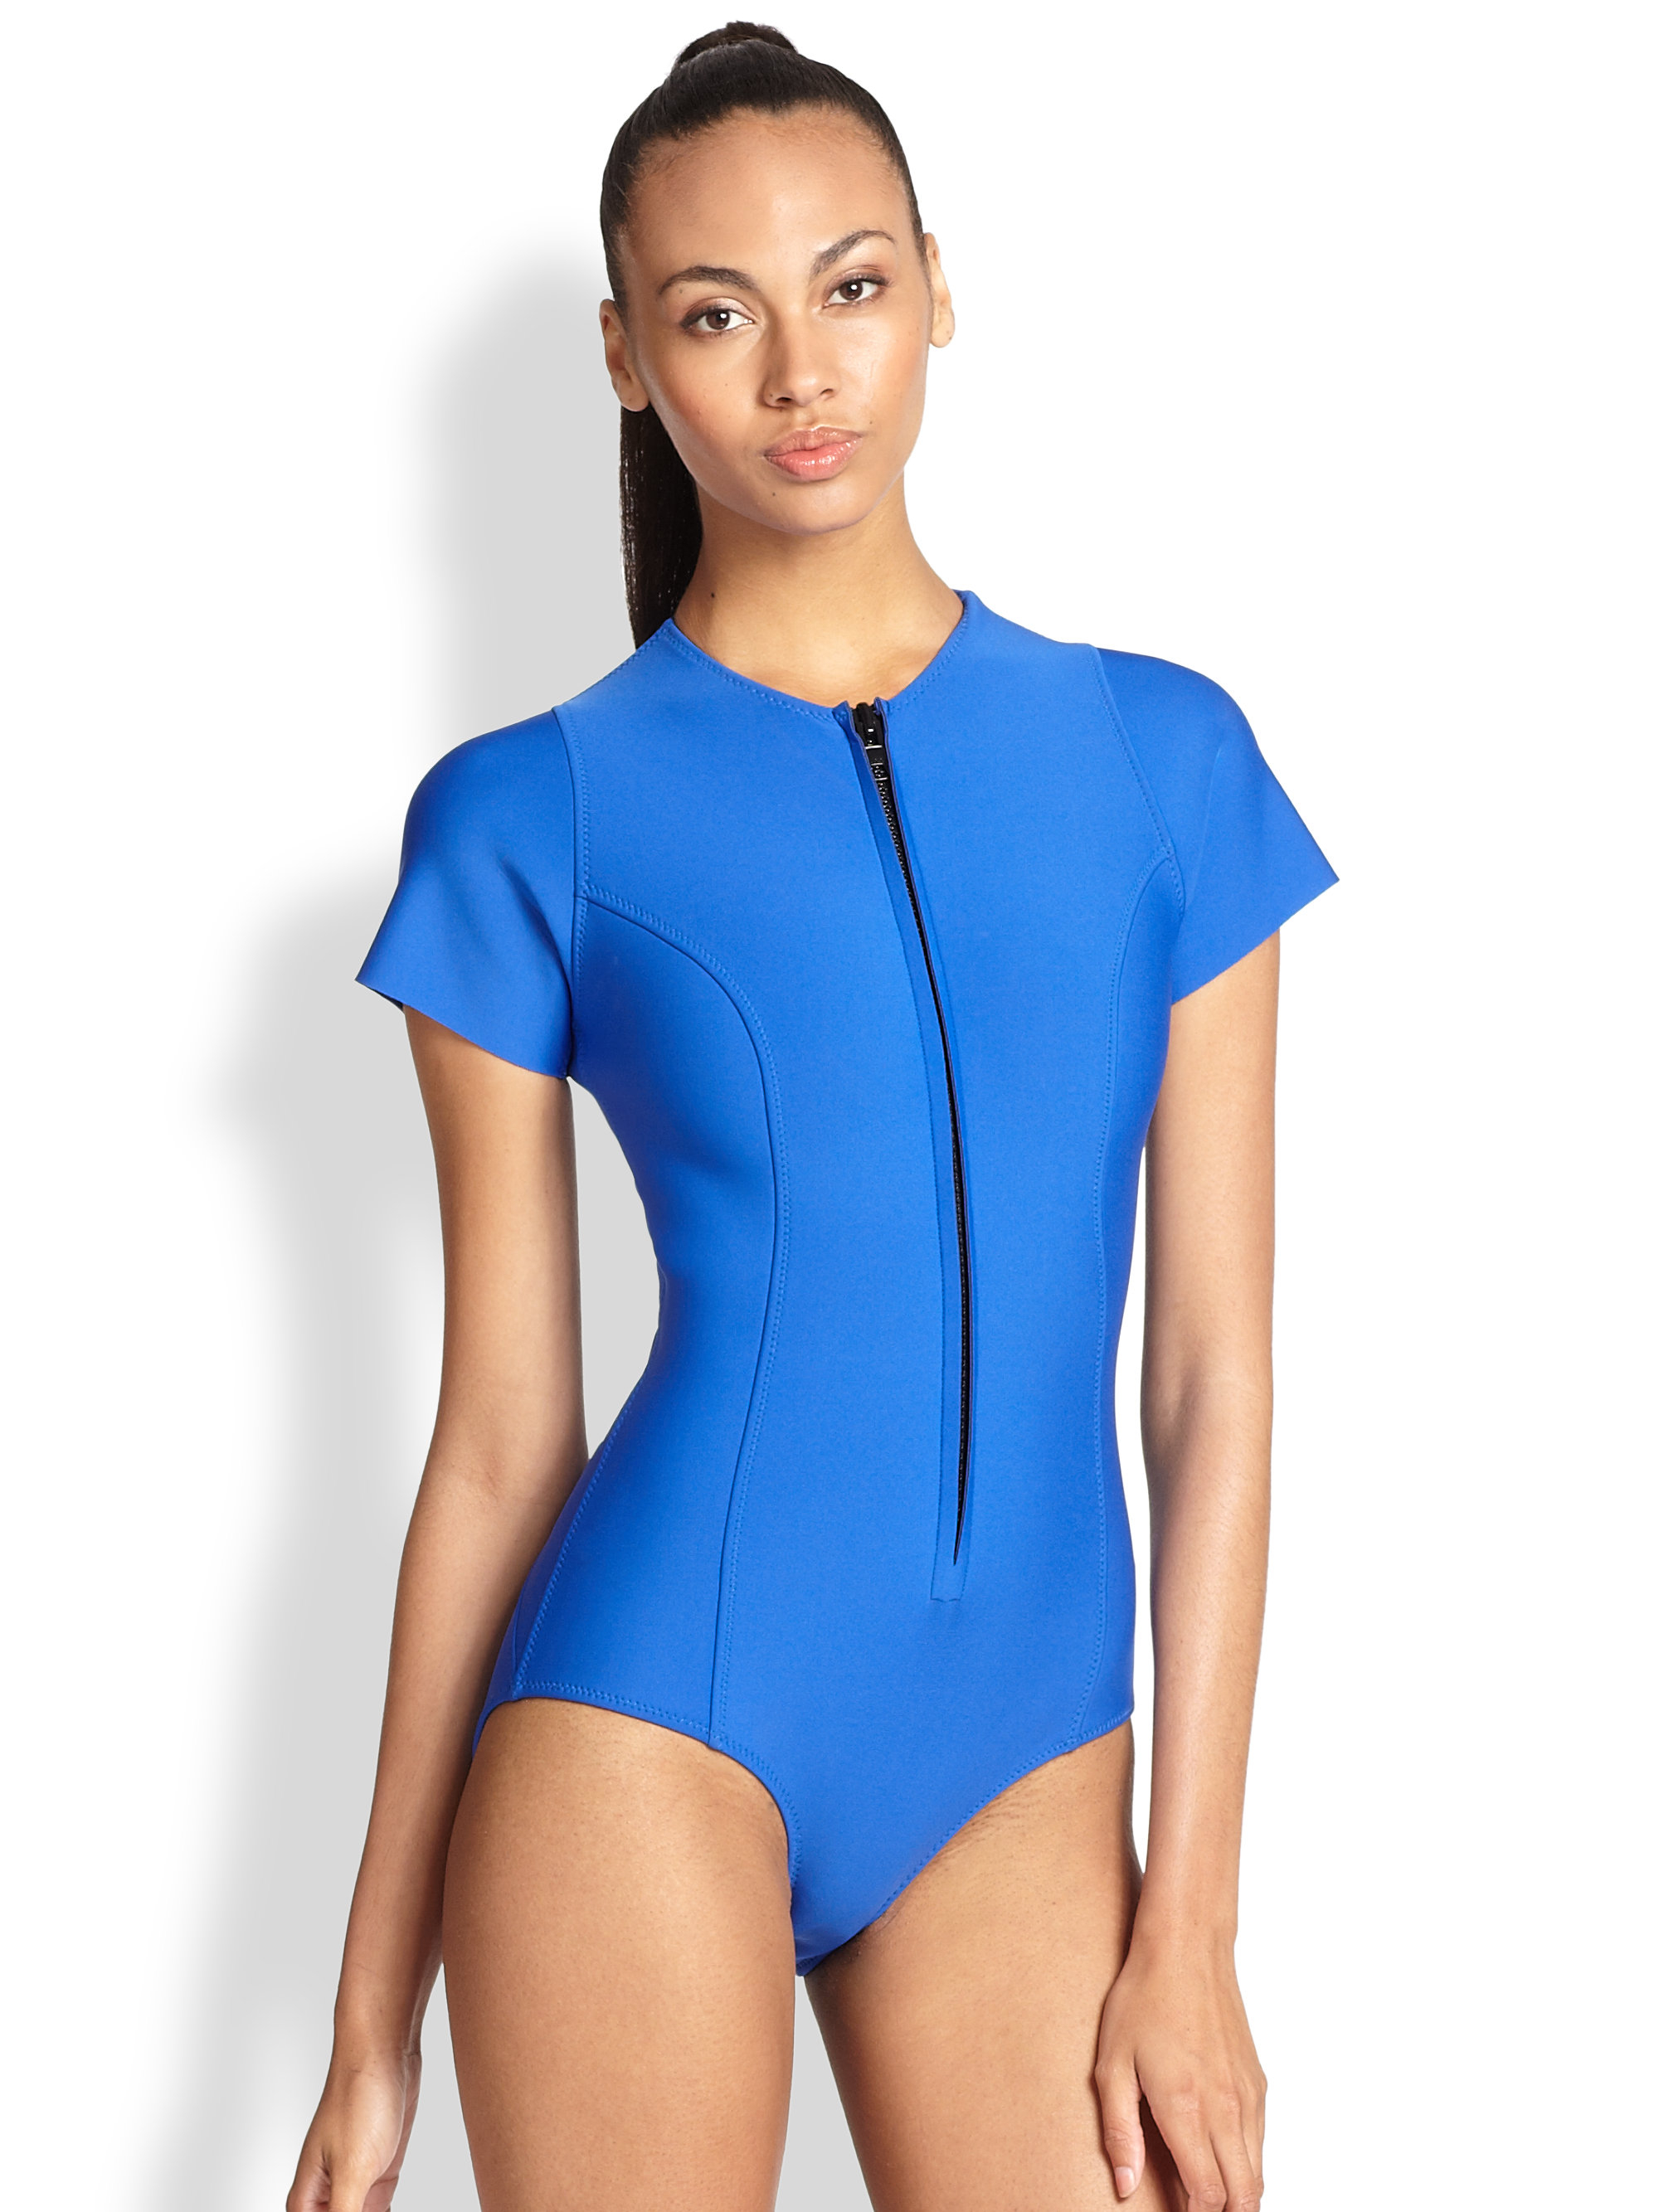 Neoprene Swimsuit: The Step Over One Pieces